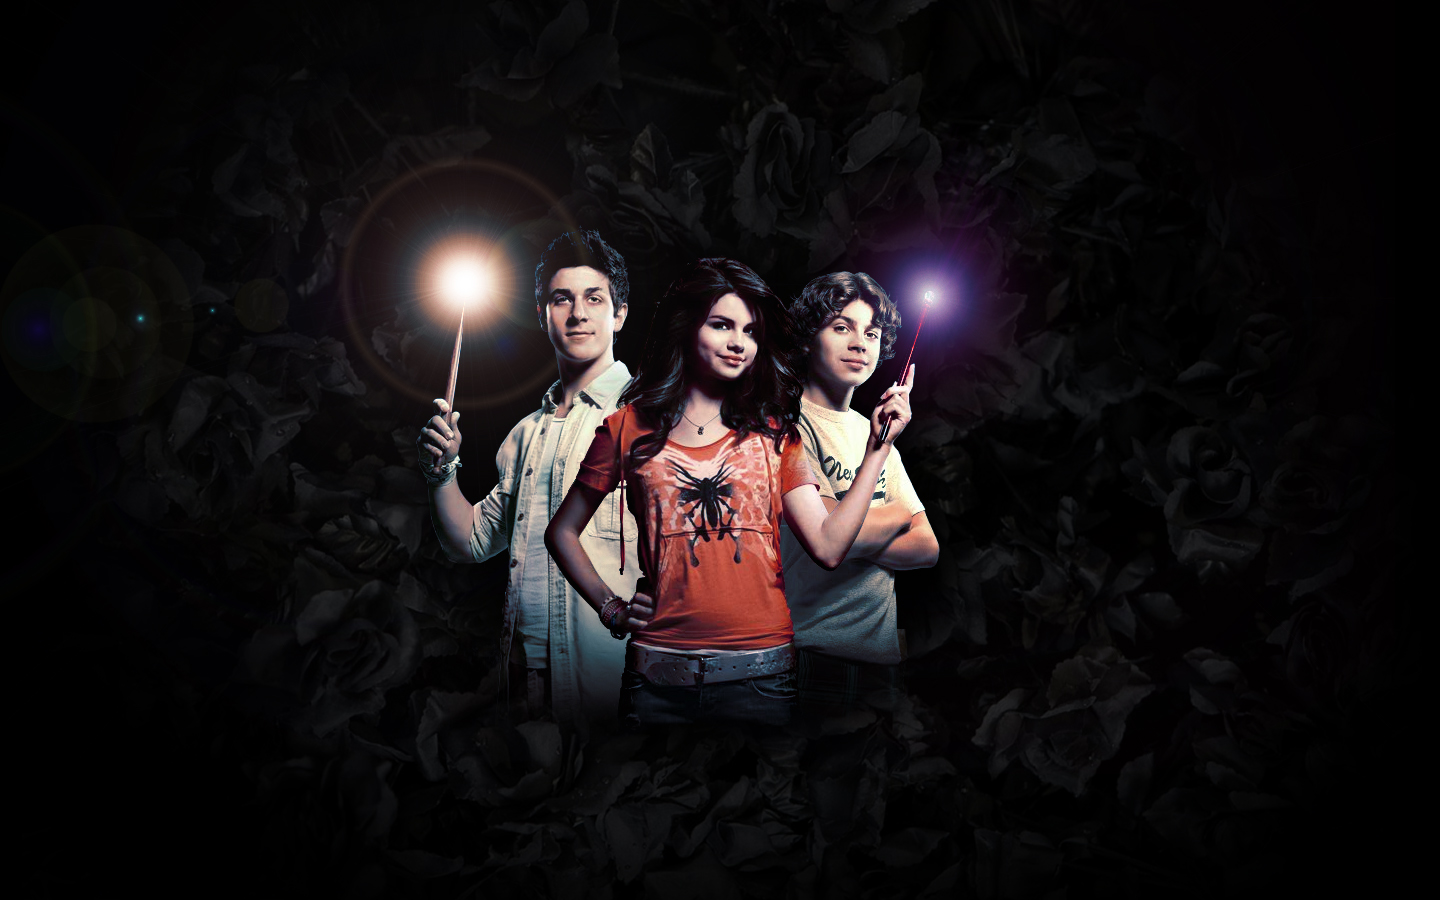 Wizards Of Waverly Place Images Wizardsofwaverlyplace Hd